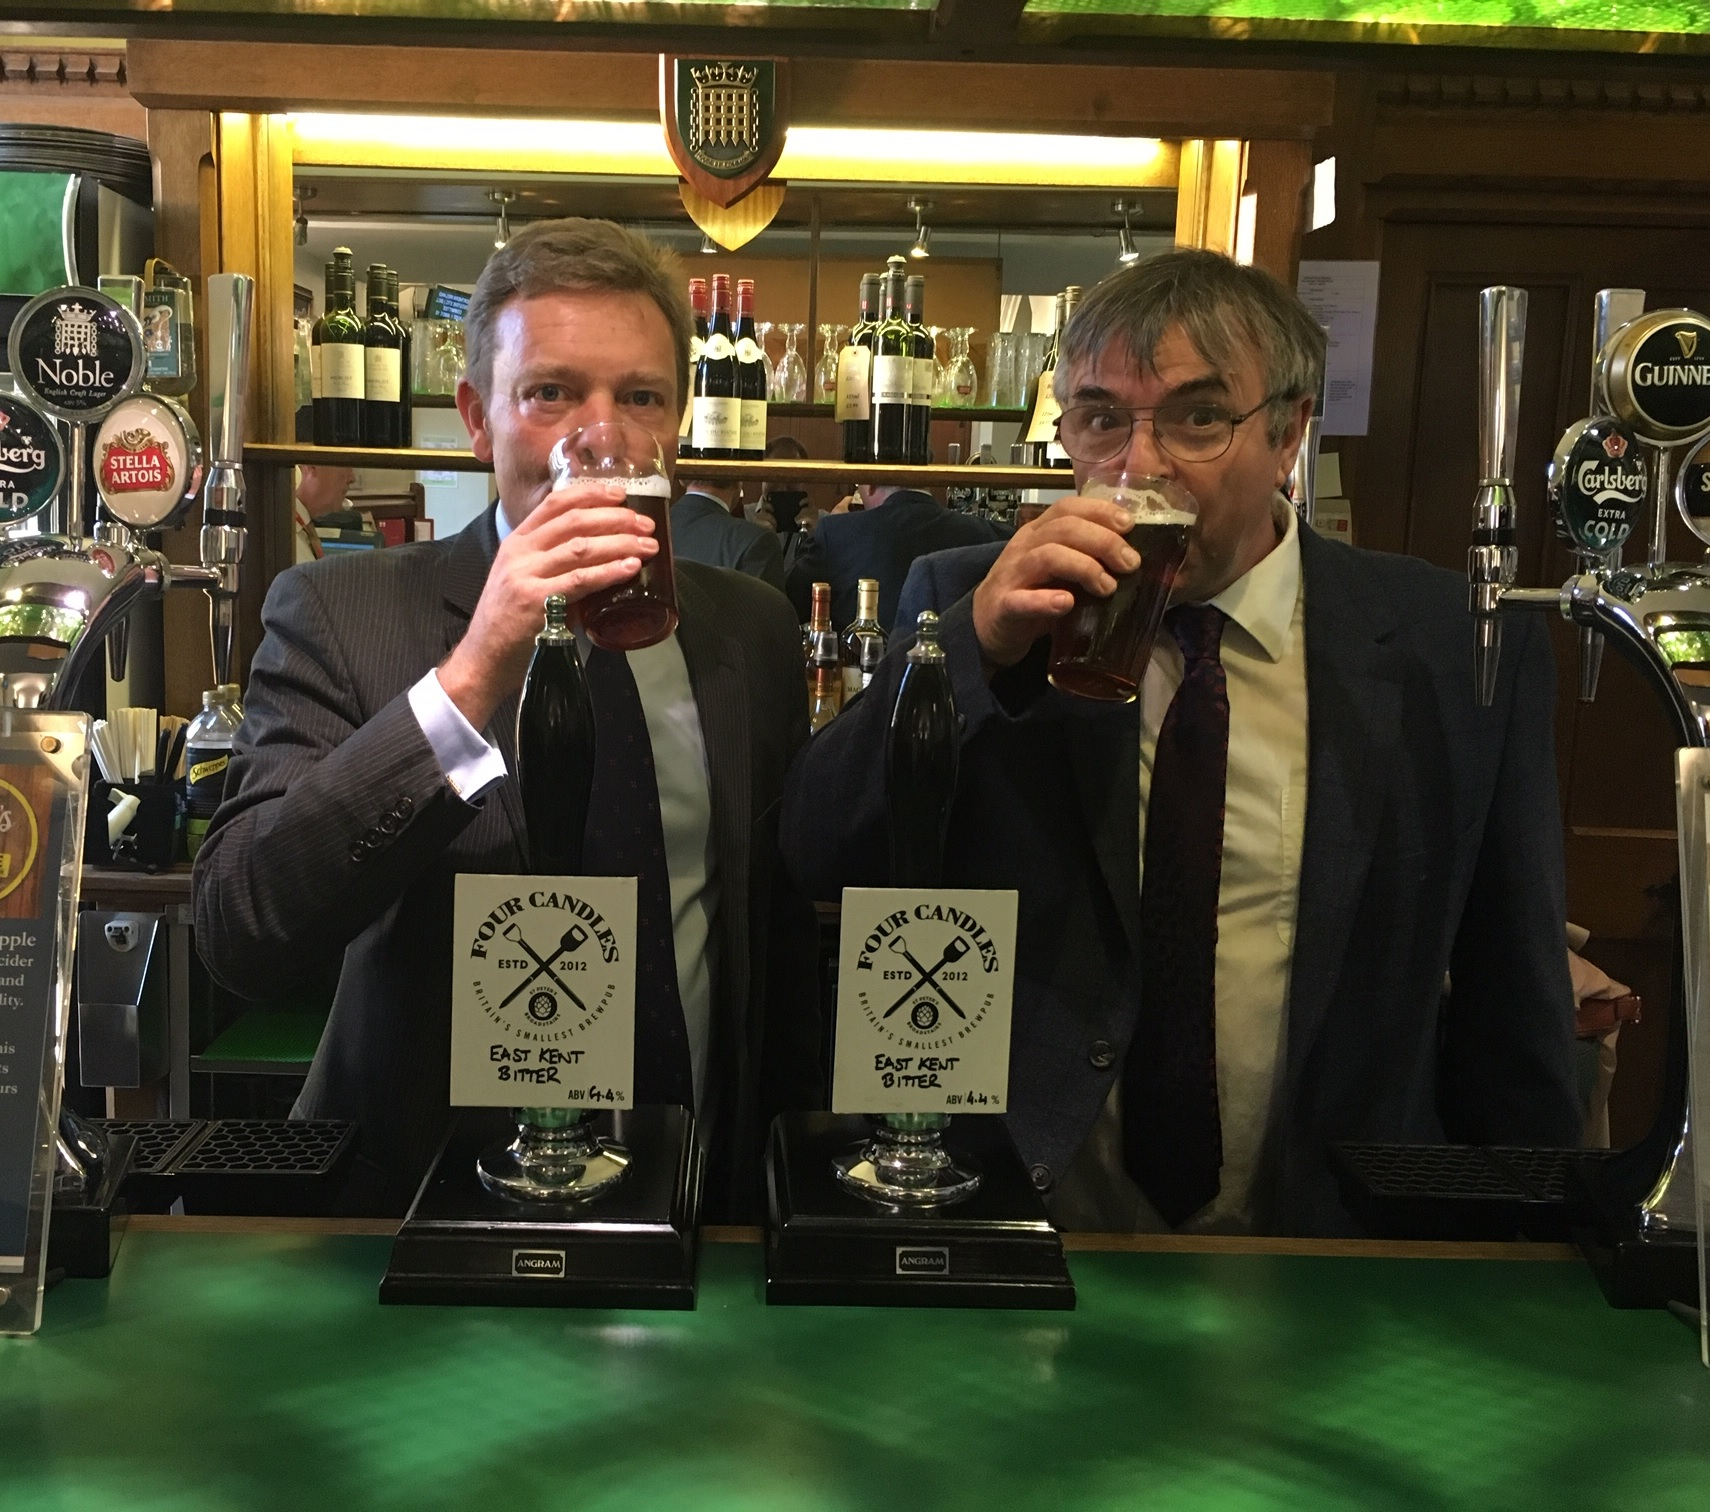 Craig with Four Candles Alehouse in Broadstairs boss, Mike Beaumont, behind the Strangers' Bar in Parliament